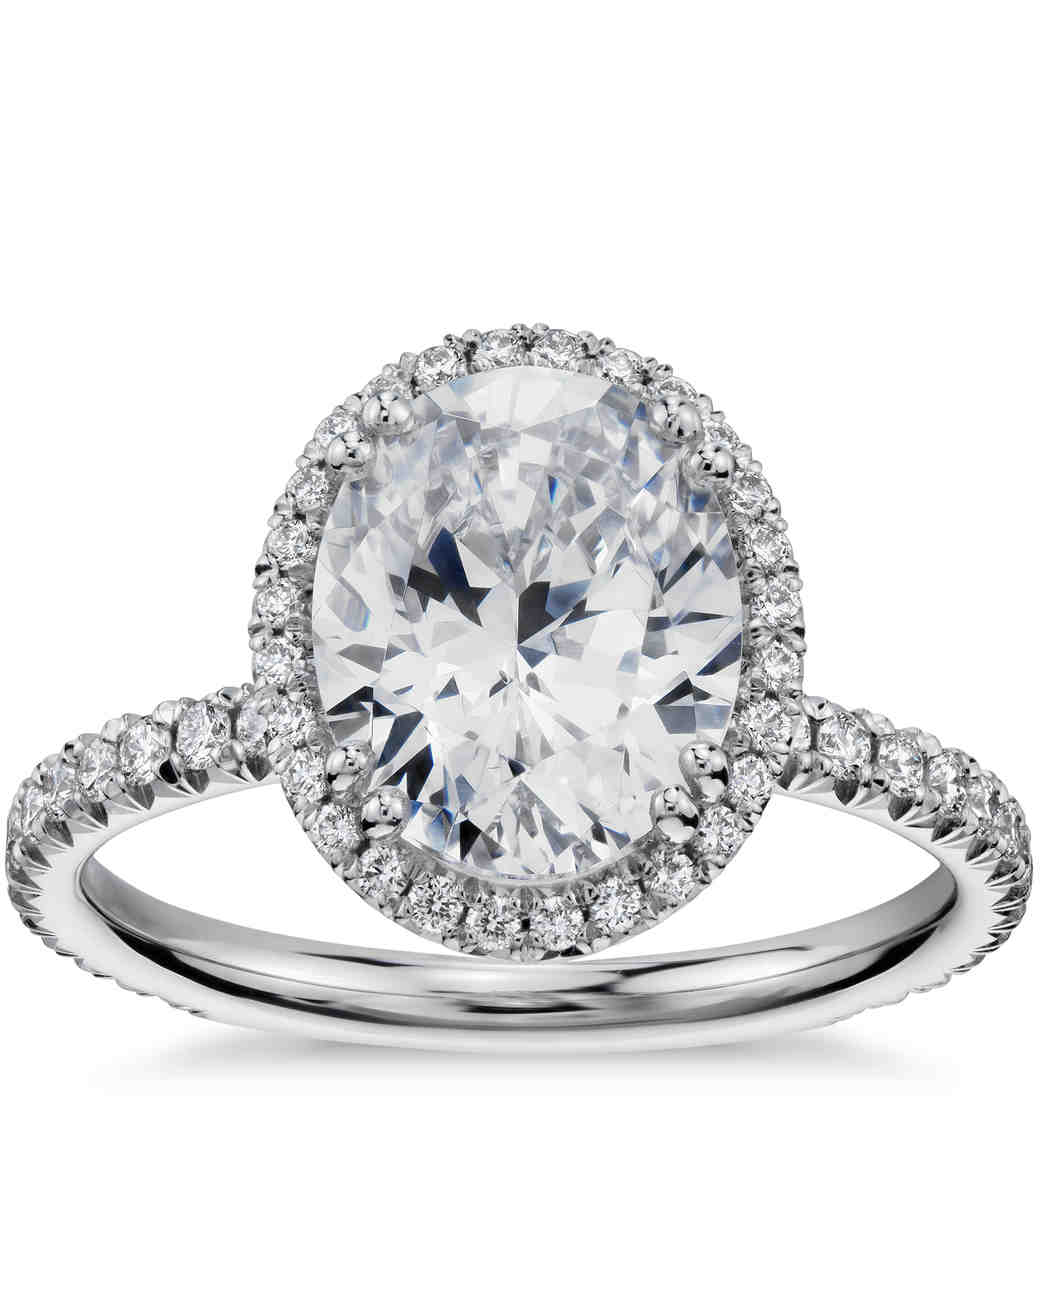 Blue Nile Oval Engagement Ring